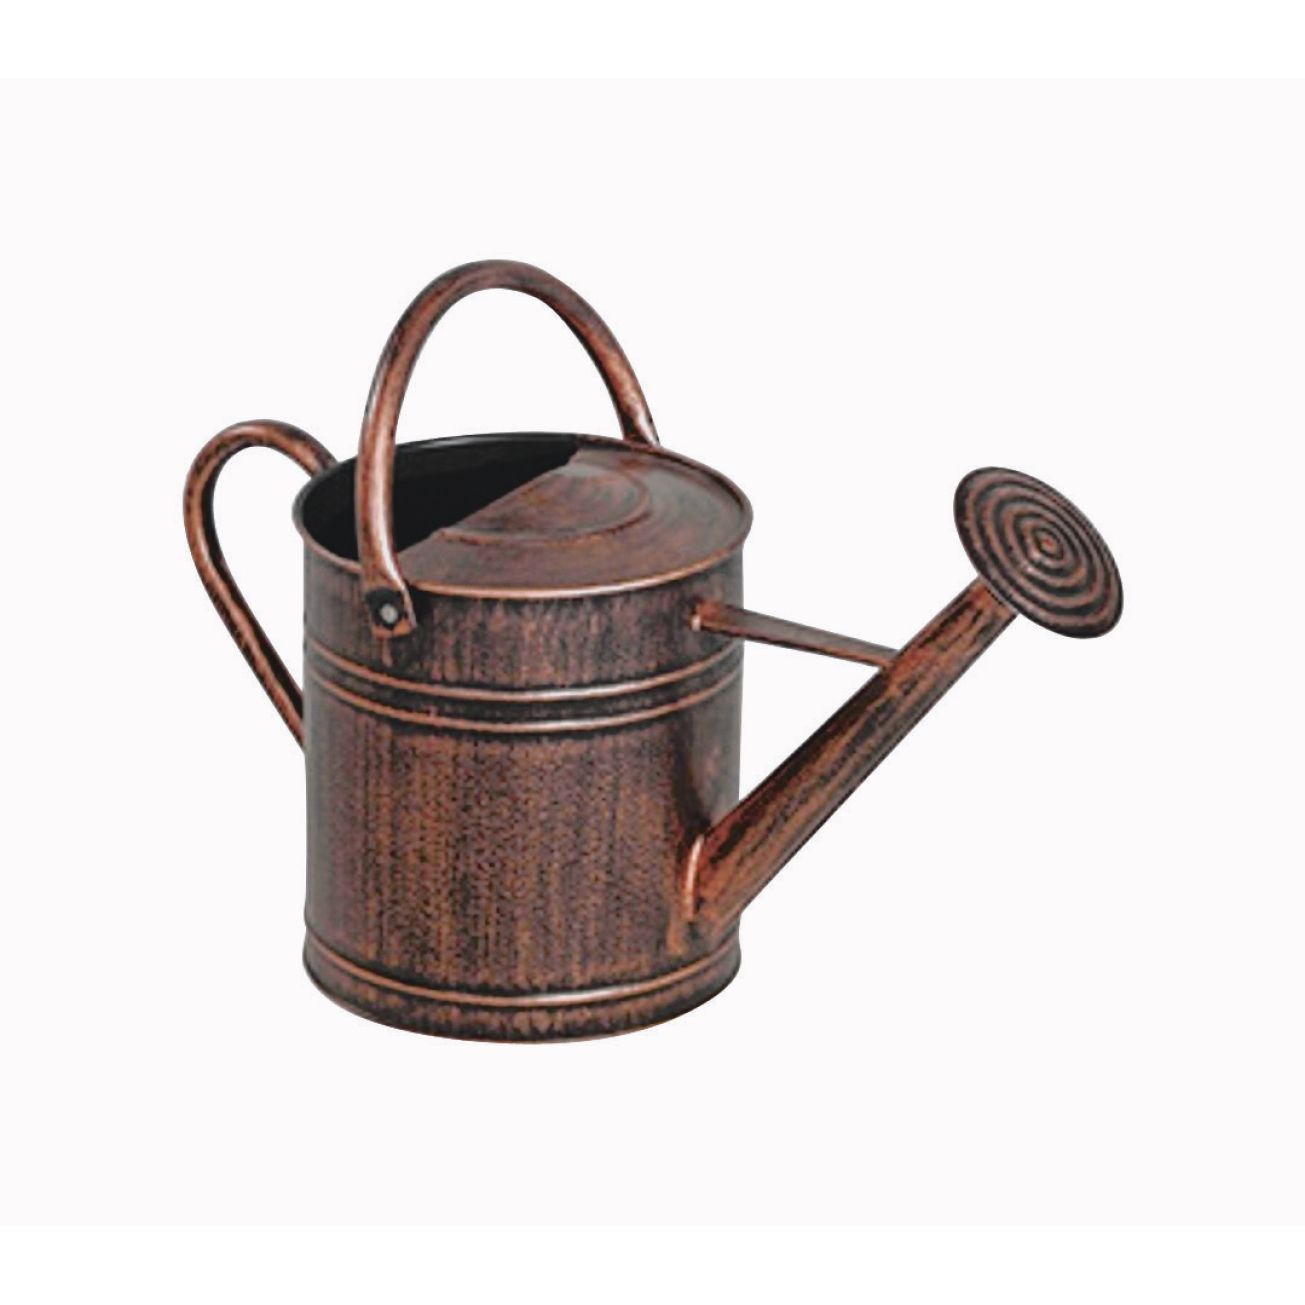 Leather work gloves ace hardware - Panacea 2 Gallon Copper Watering Can 84872 Sprinkling Cans Ace Hardware